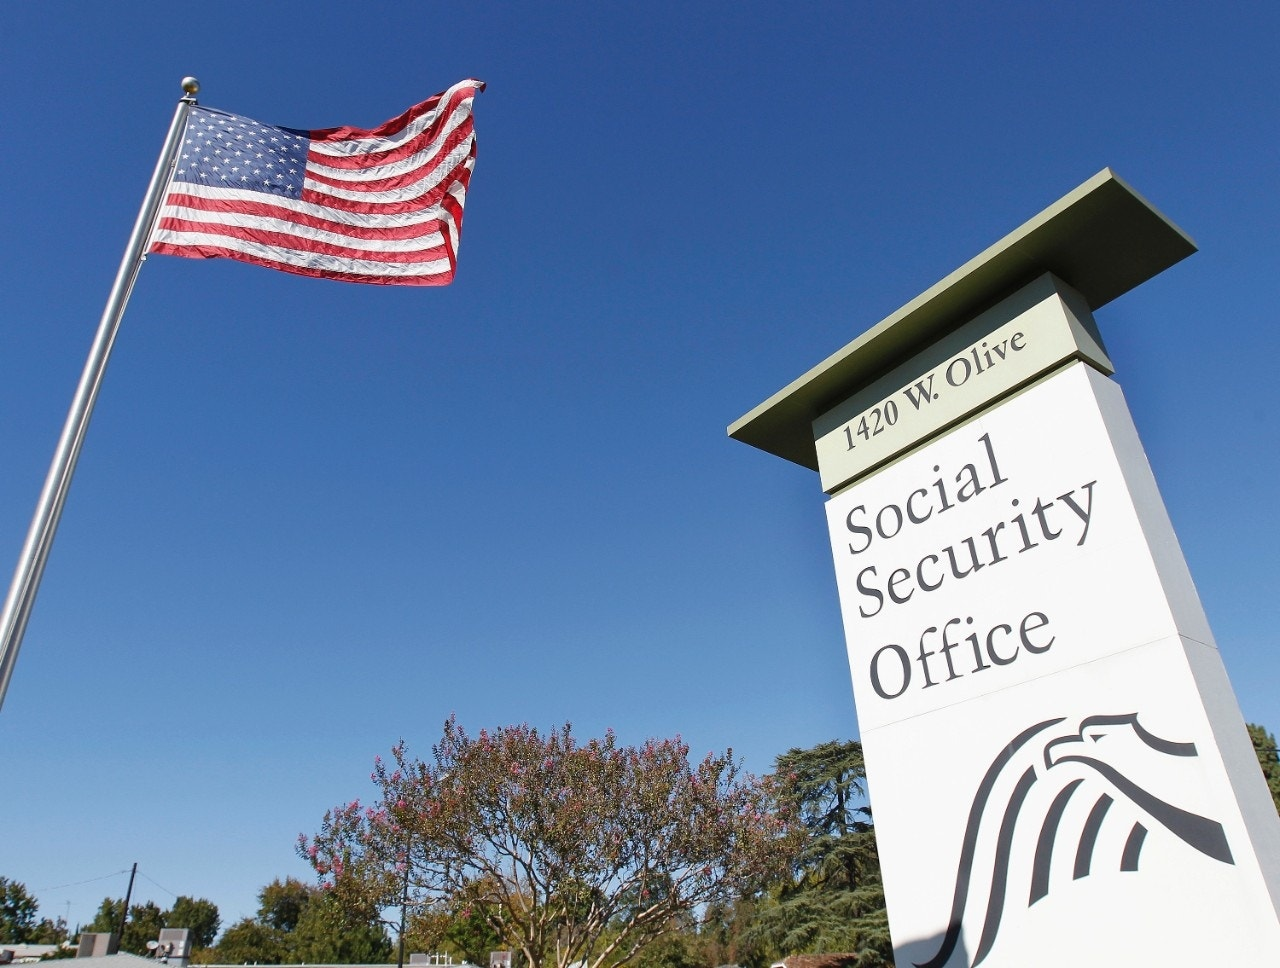 Social Security Taxable Worksheet Free Worksheets Library – Social Security Taxable Worksheet